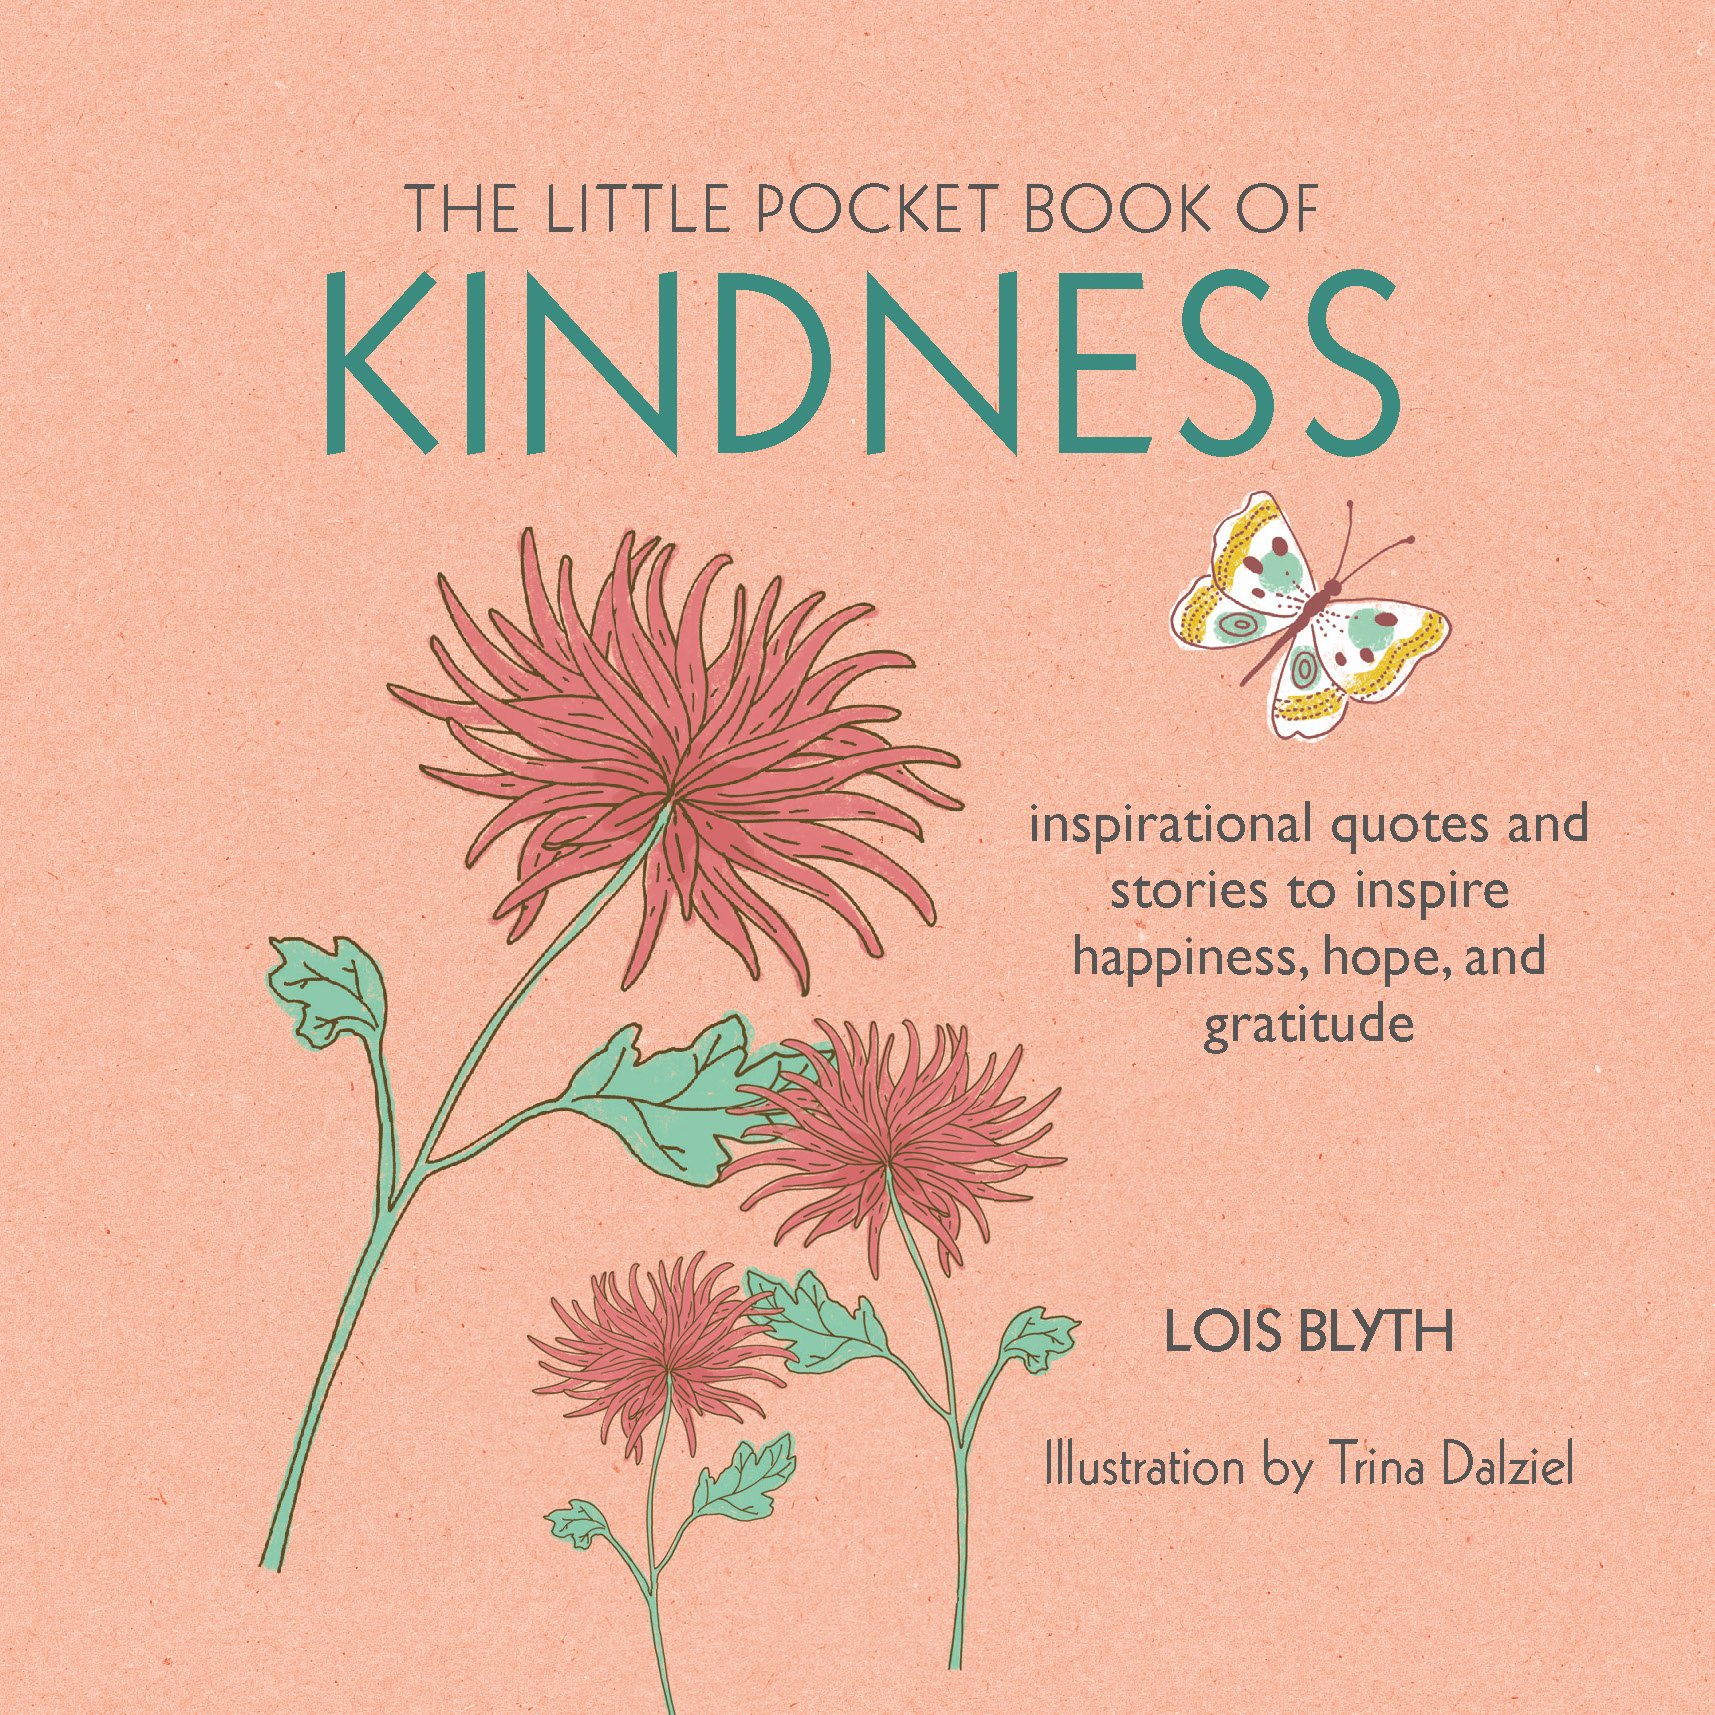 The Little Pocket Book of Kindness: inspirational quotes and stories to inspire happiness, hope, and gratitude PDF